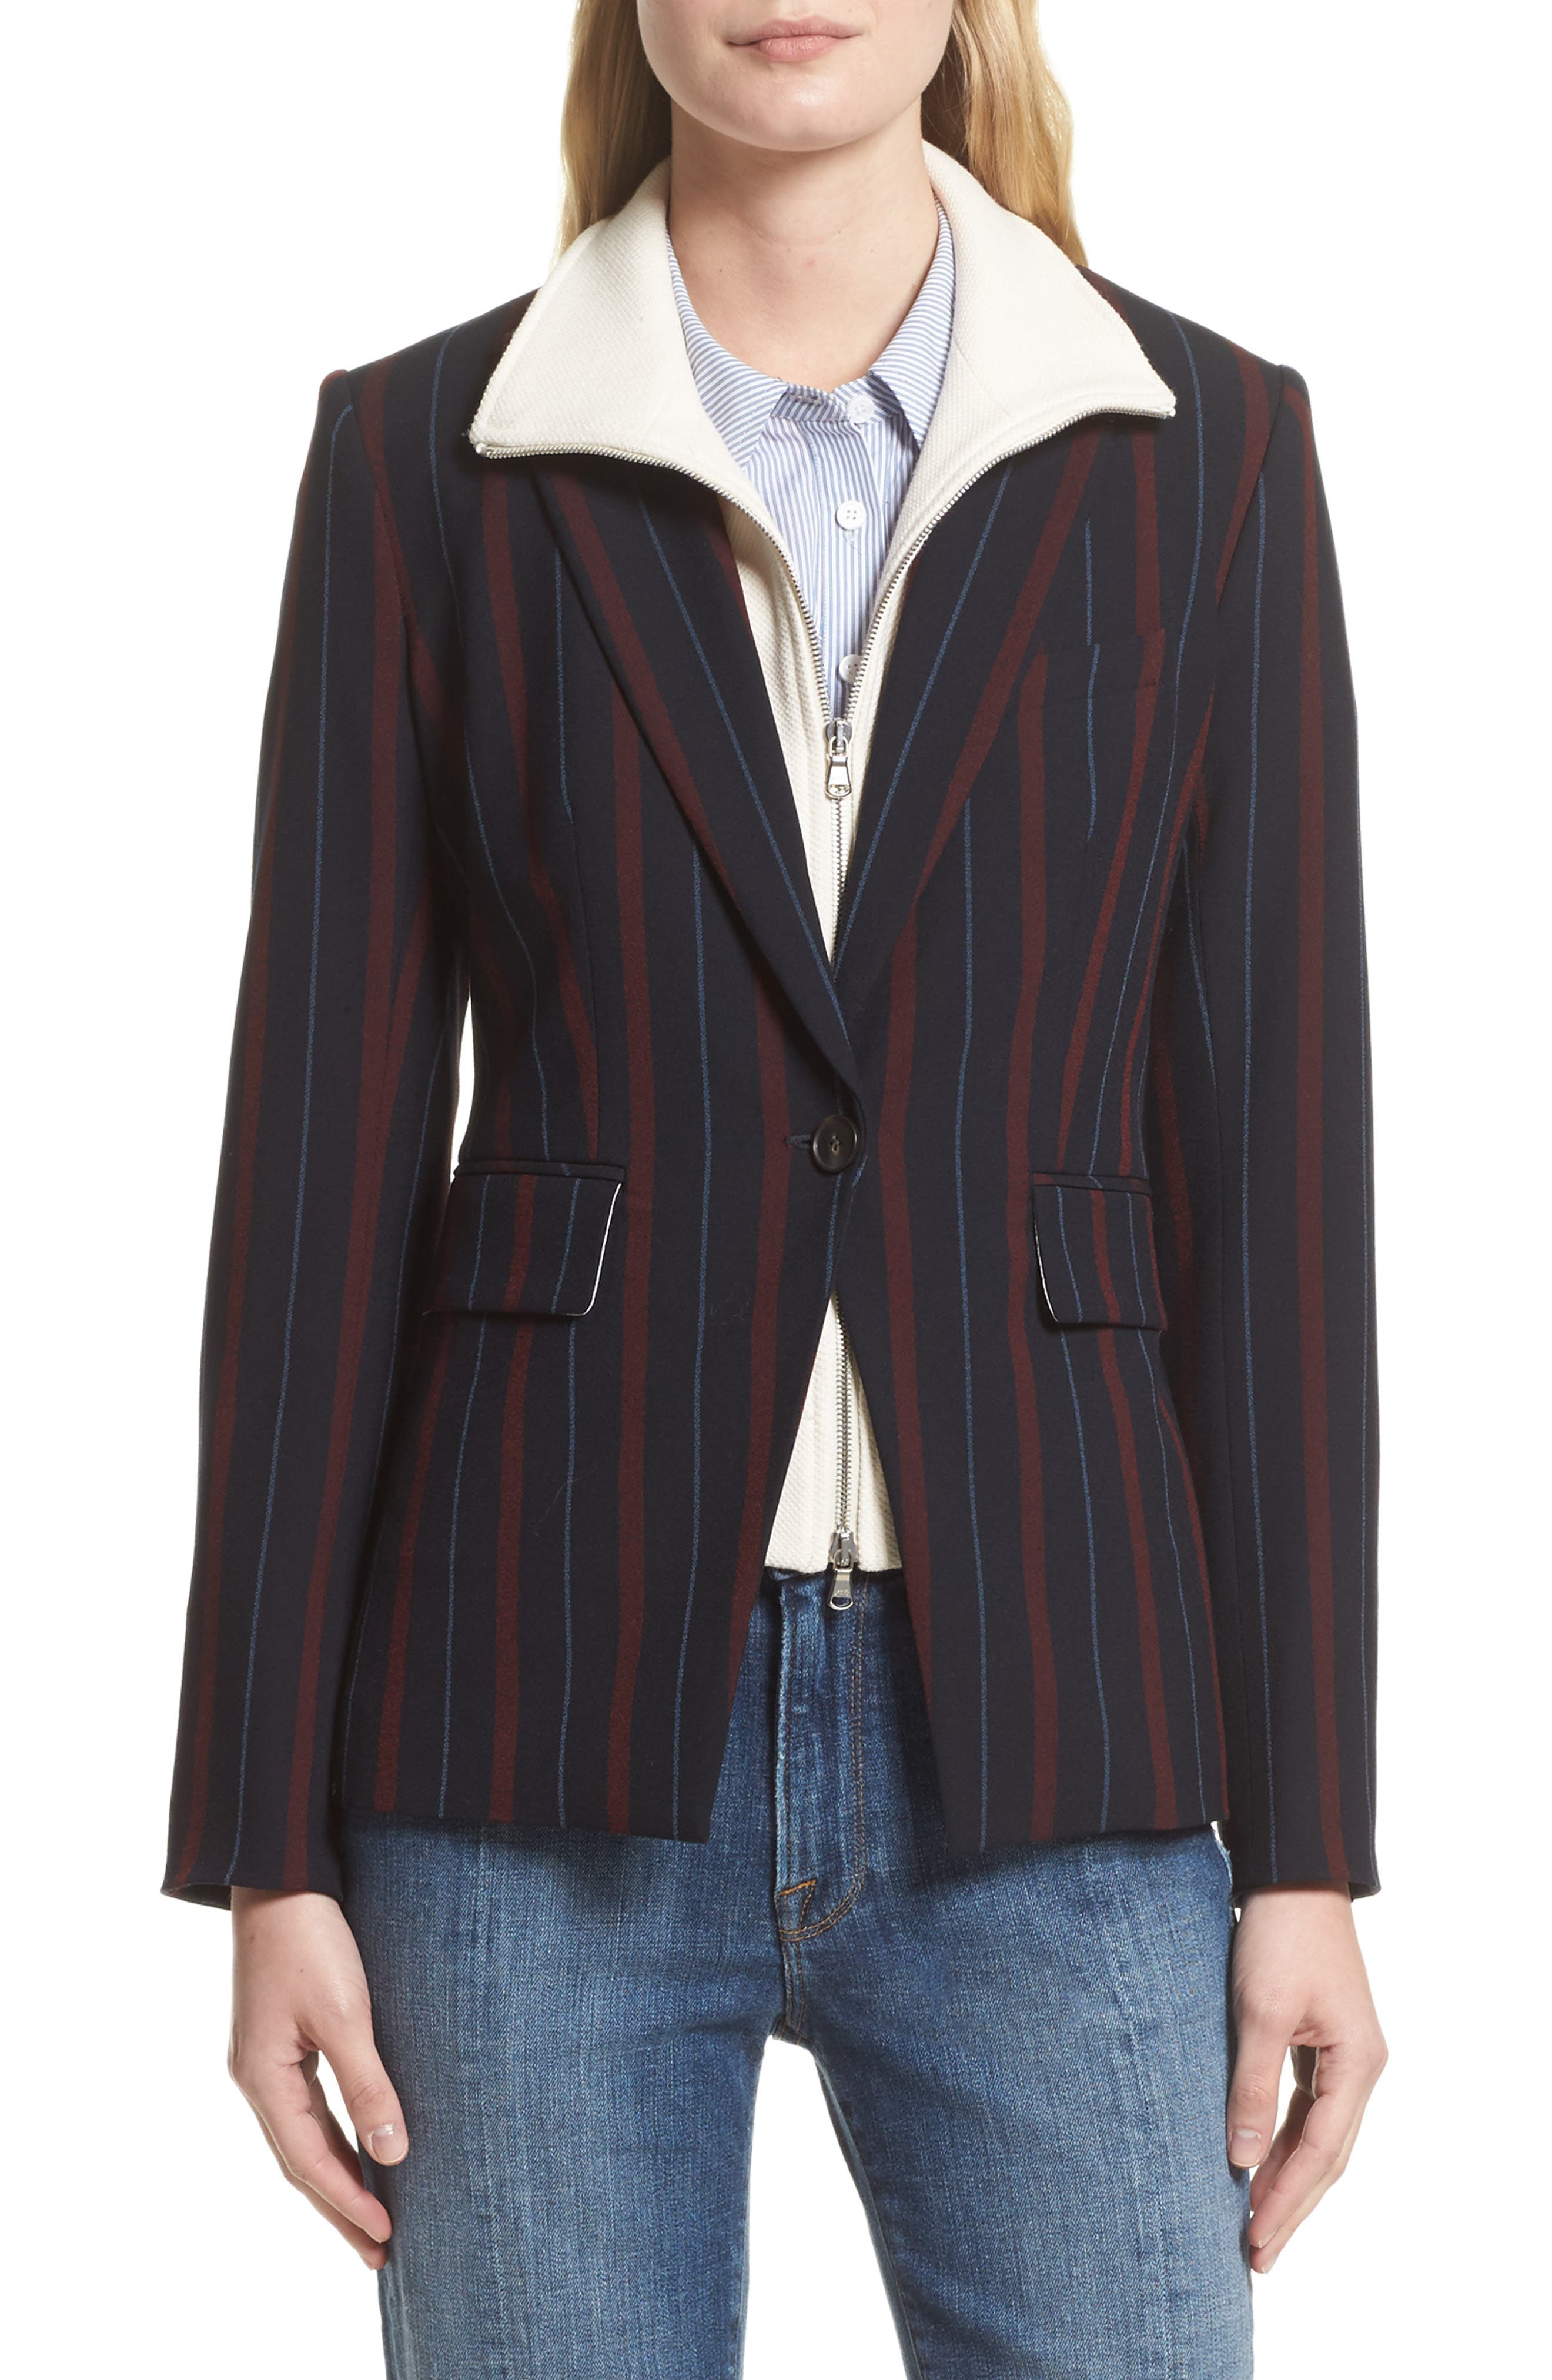 VERONICA BEARD Carter Cutaway Jacket with Removable Dickey